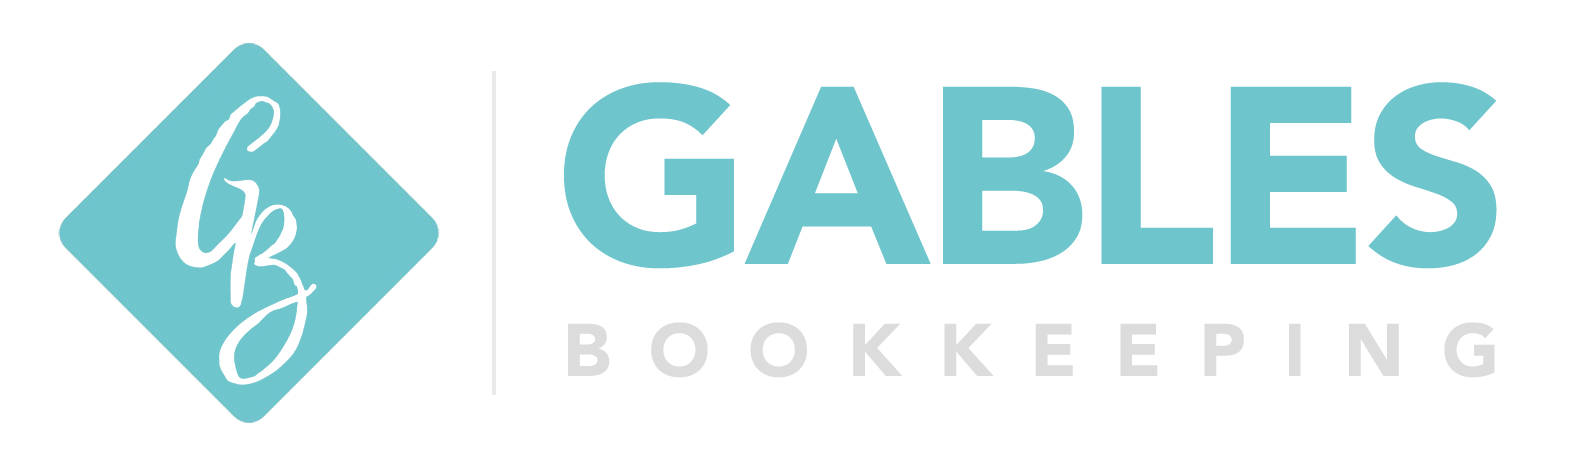 Gables Bookkeeping